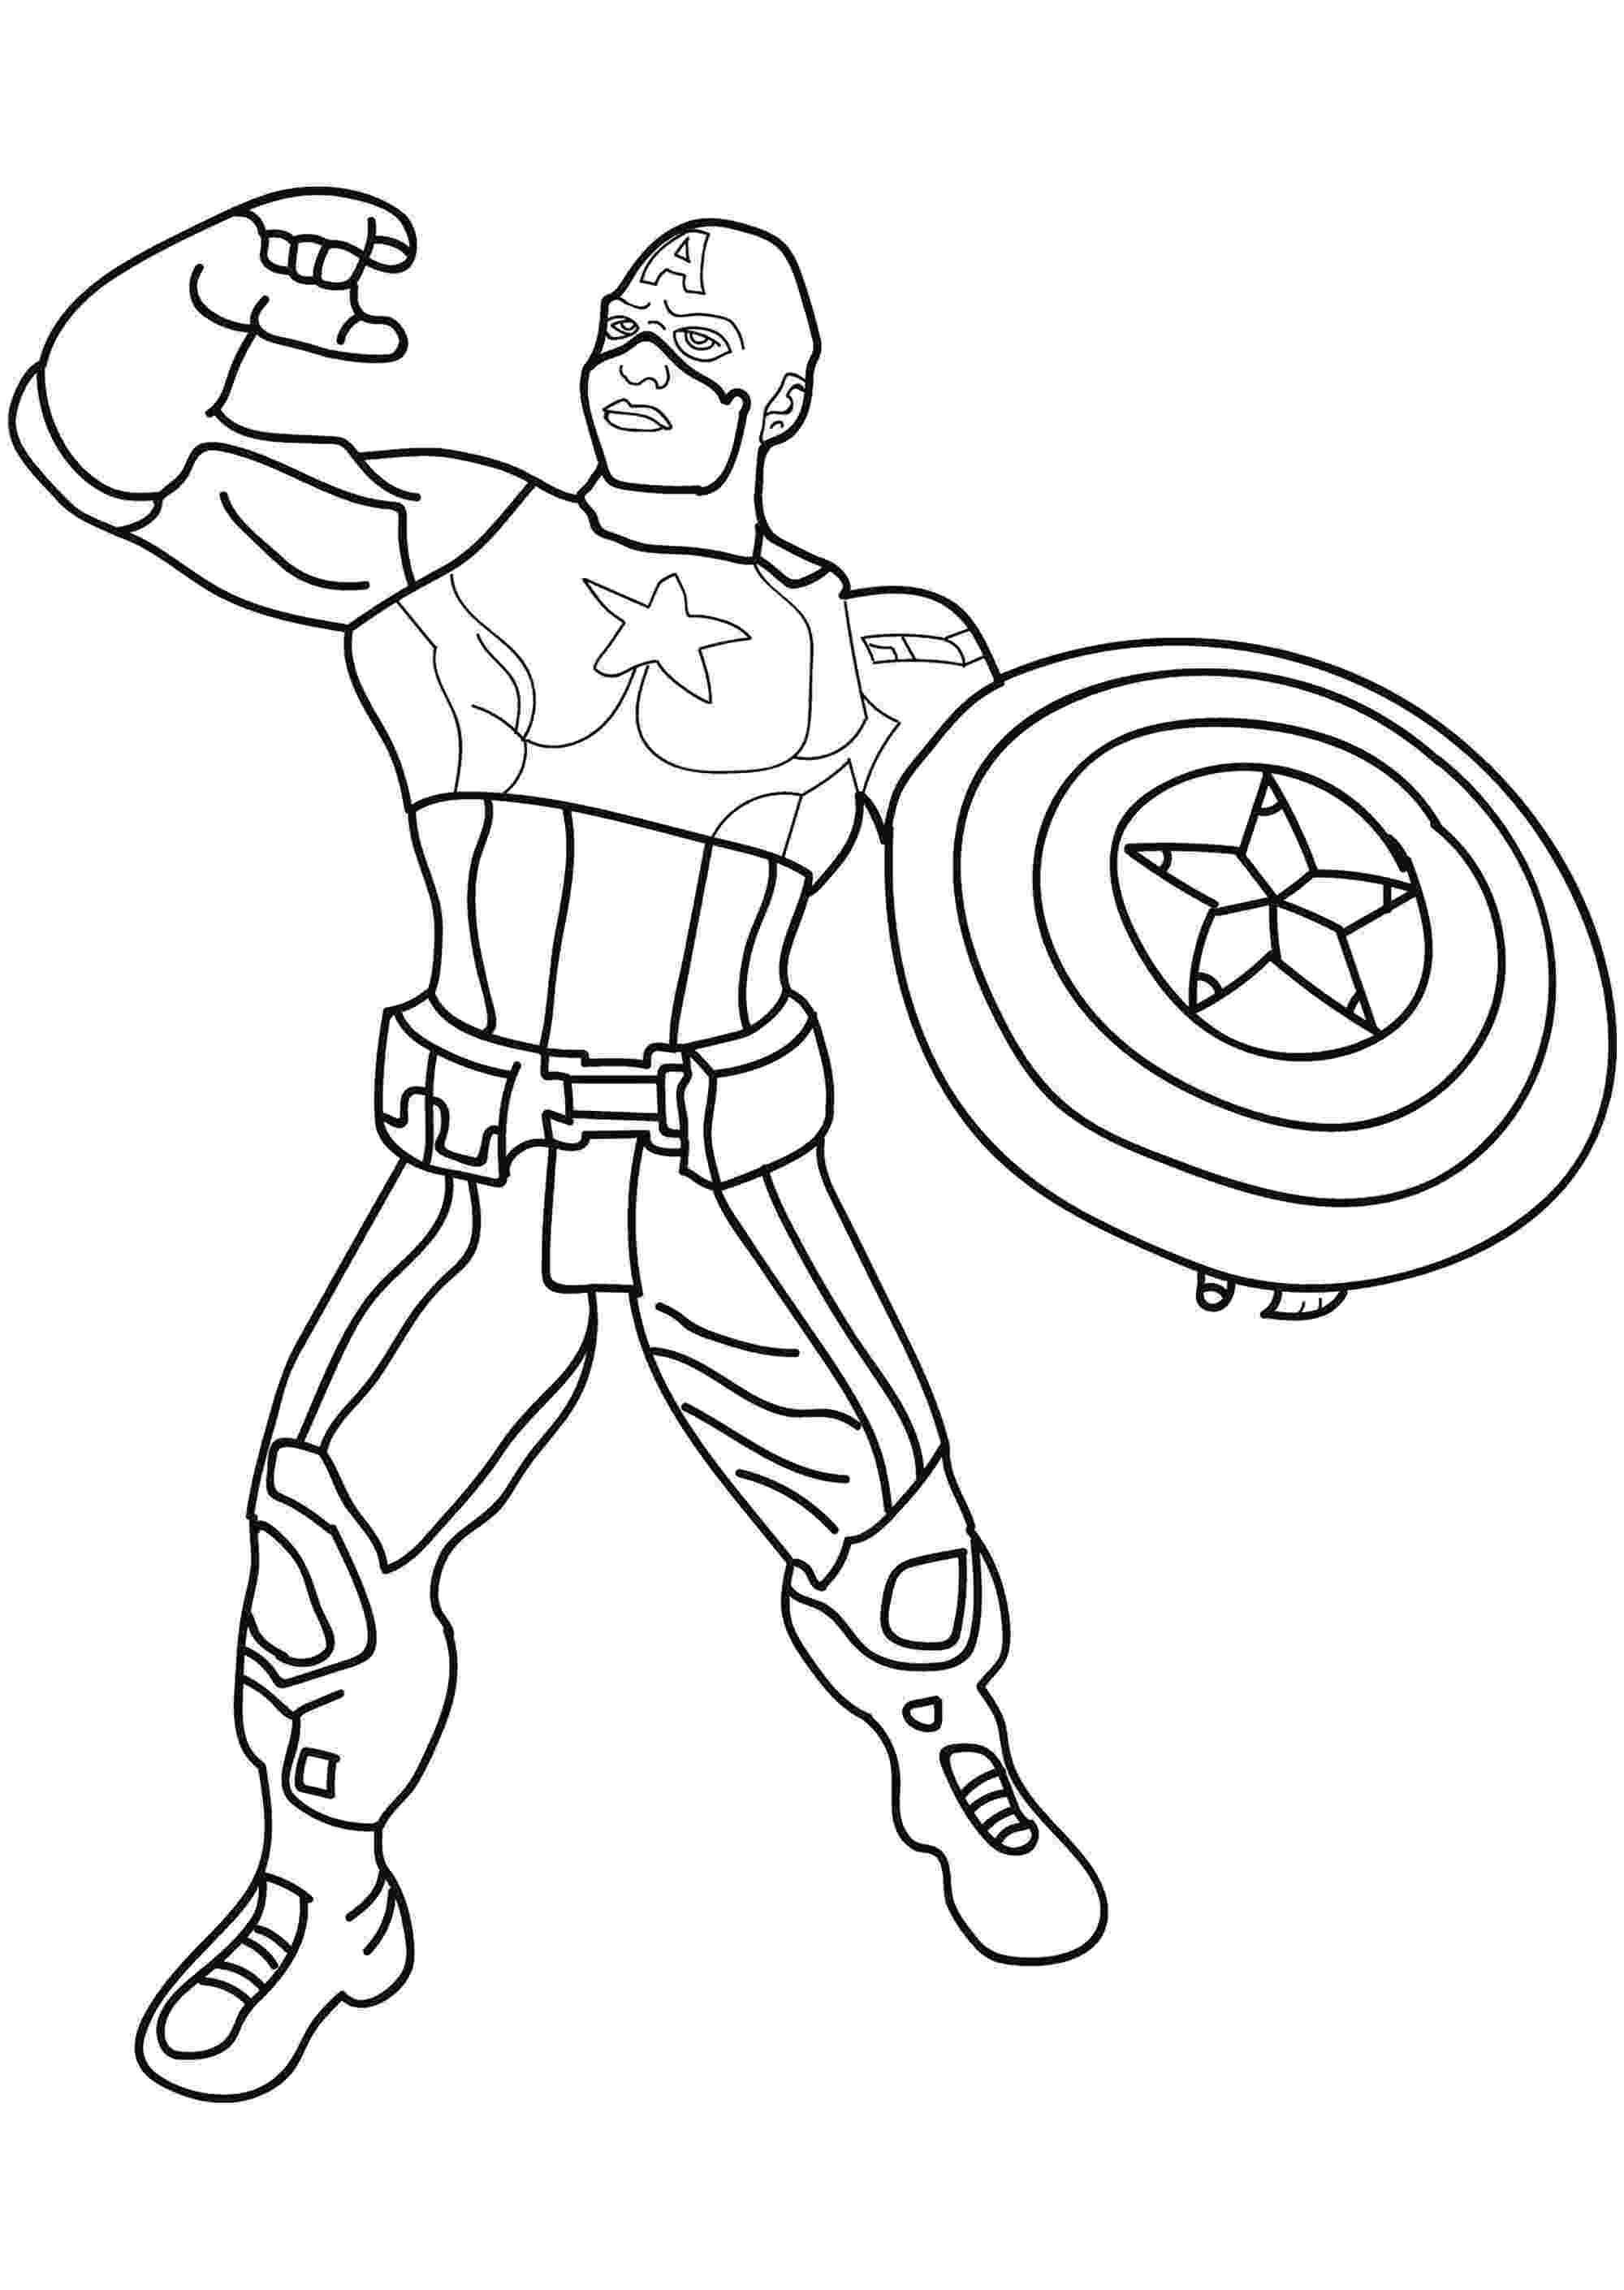 captain america coloring pages captain america captain america civil war drawing america captain coloring pages